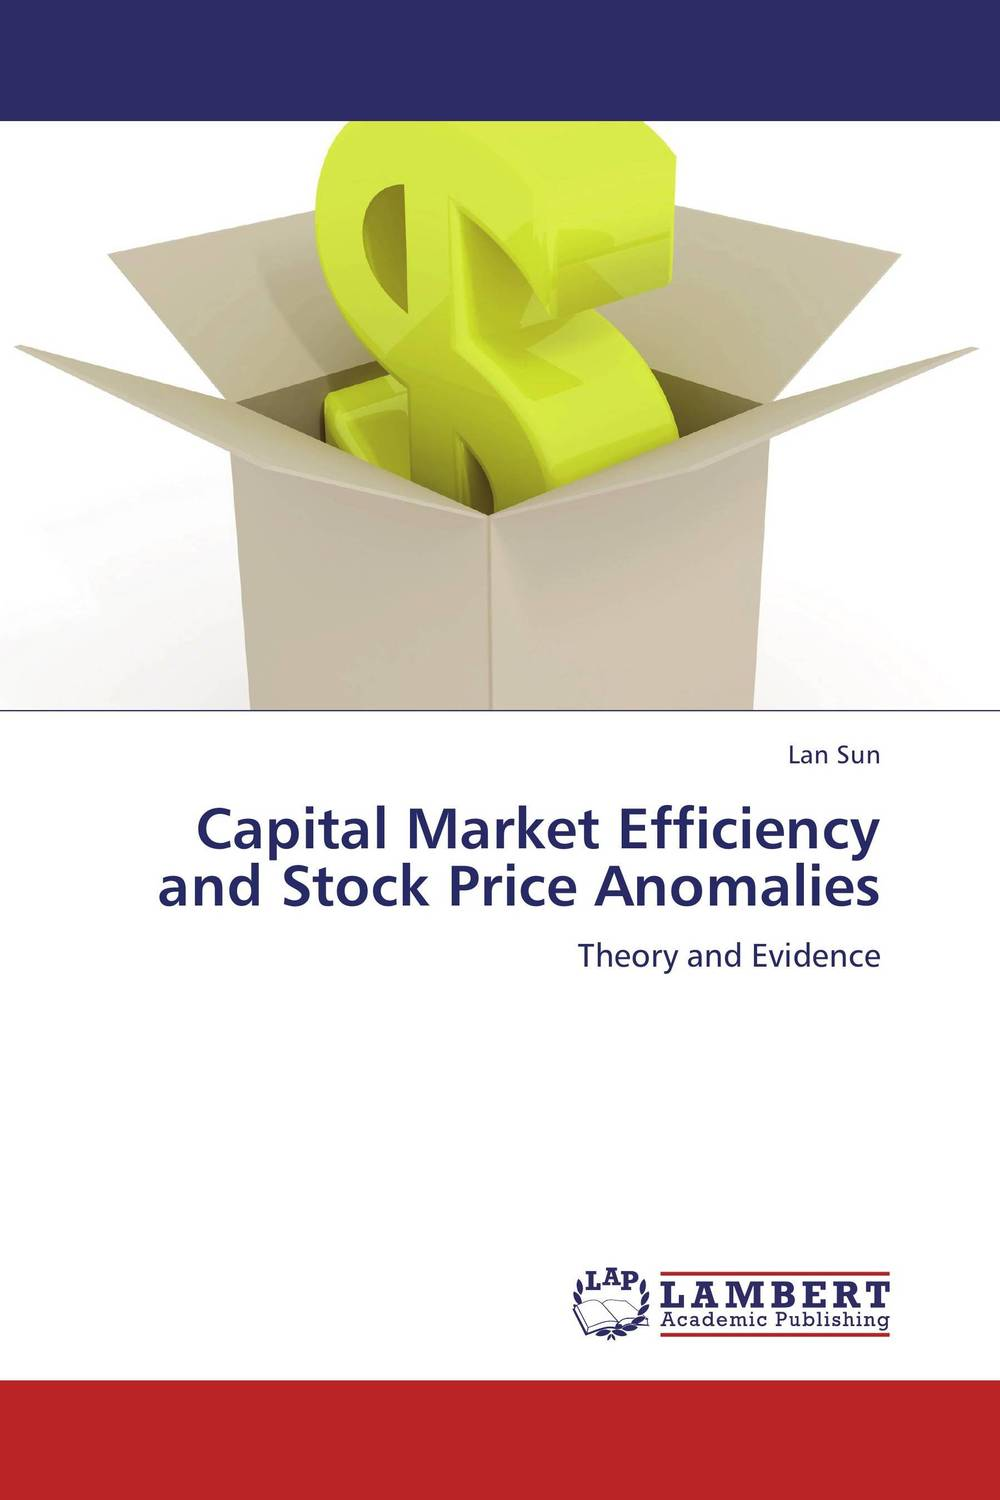 Capital Market Efficiency and Stock Price Anomalies corporate governance and firm value